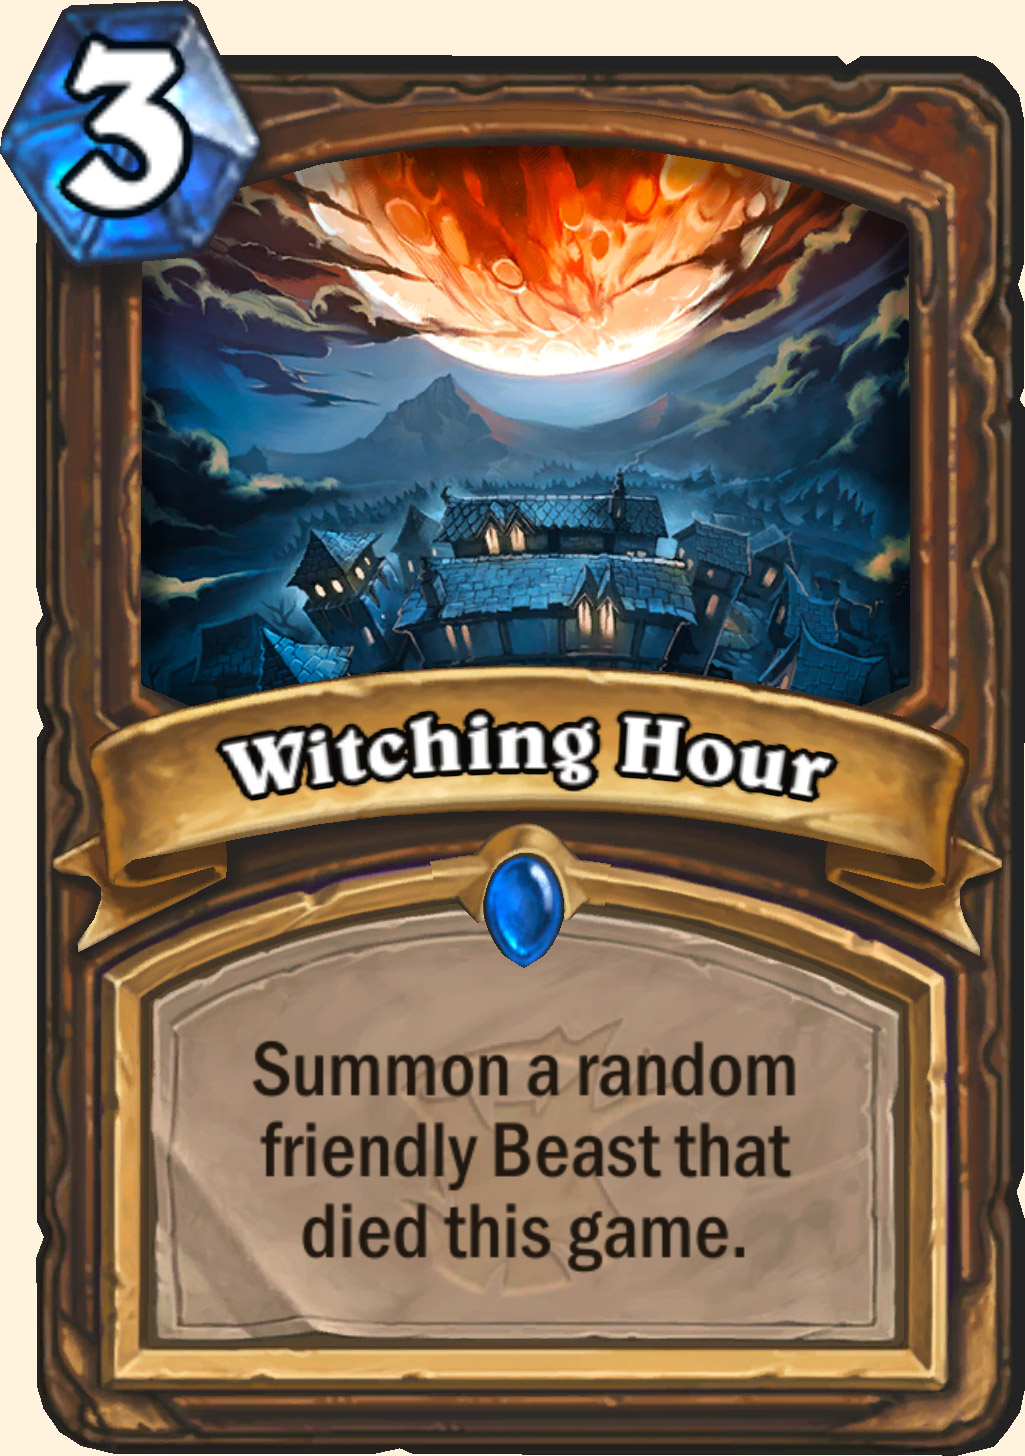 witching-hour-hearthstone-card.jpg